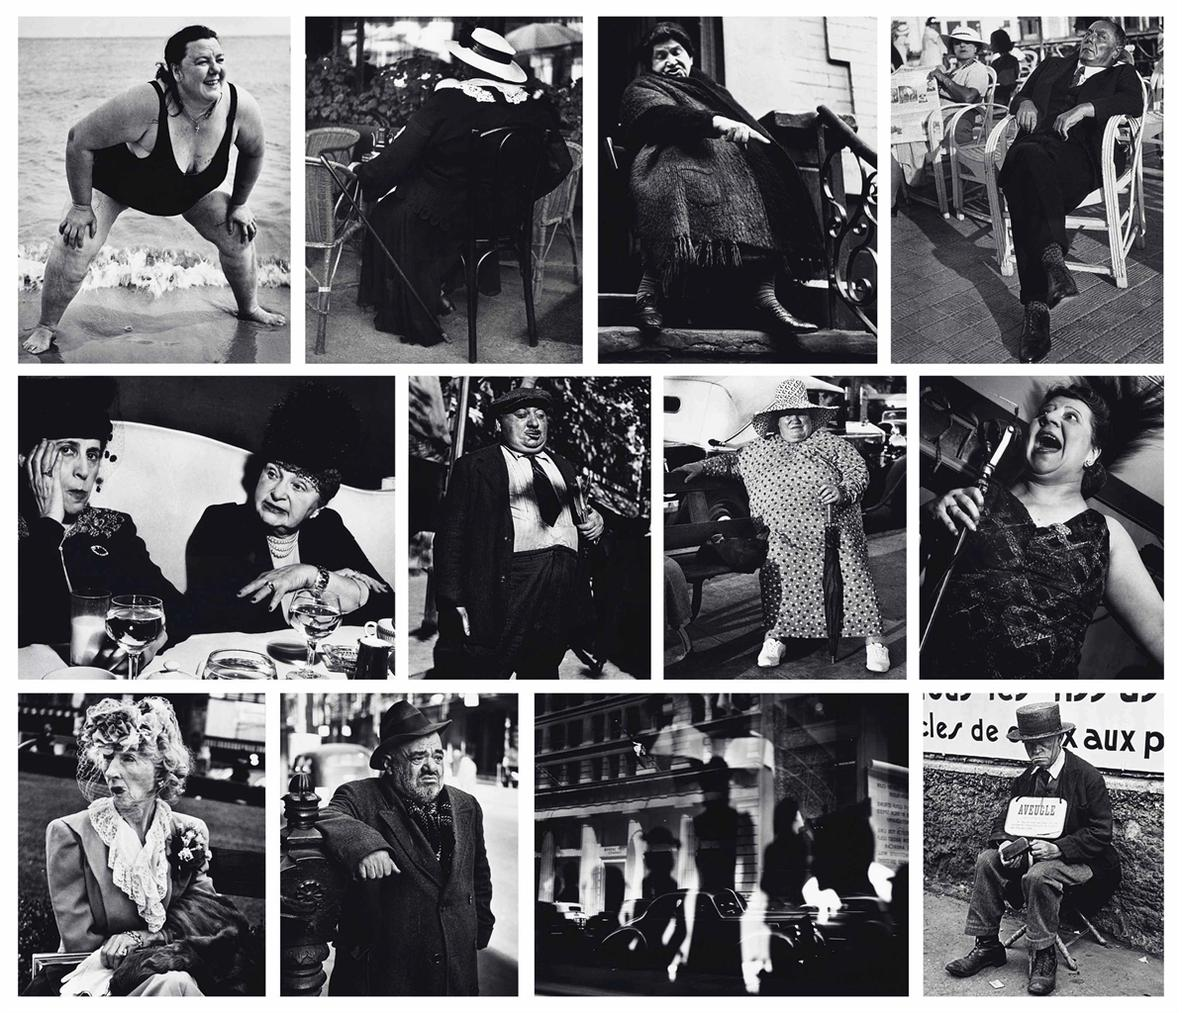 Lisette Model-Lisette Model: Twelve Photographs-